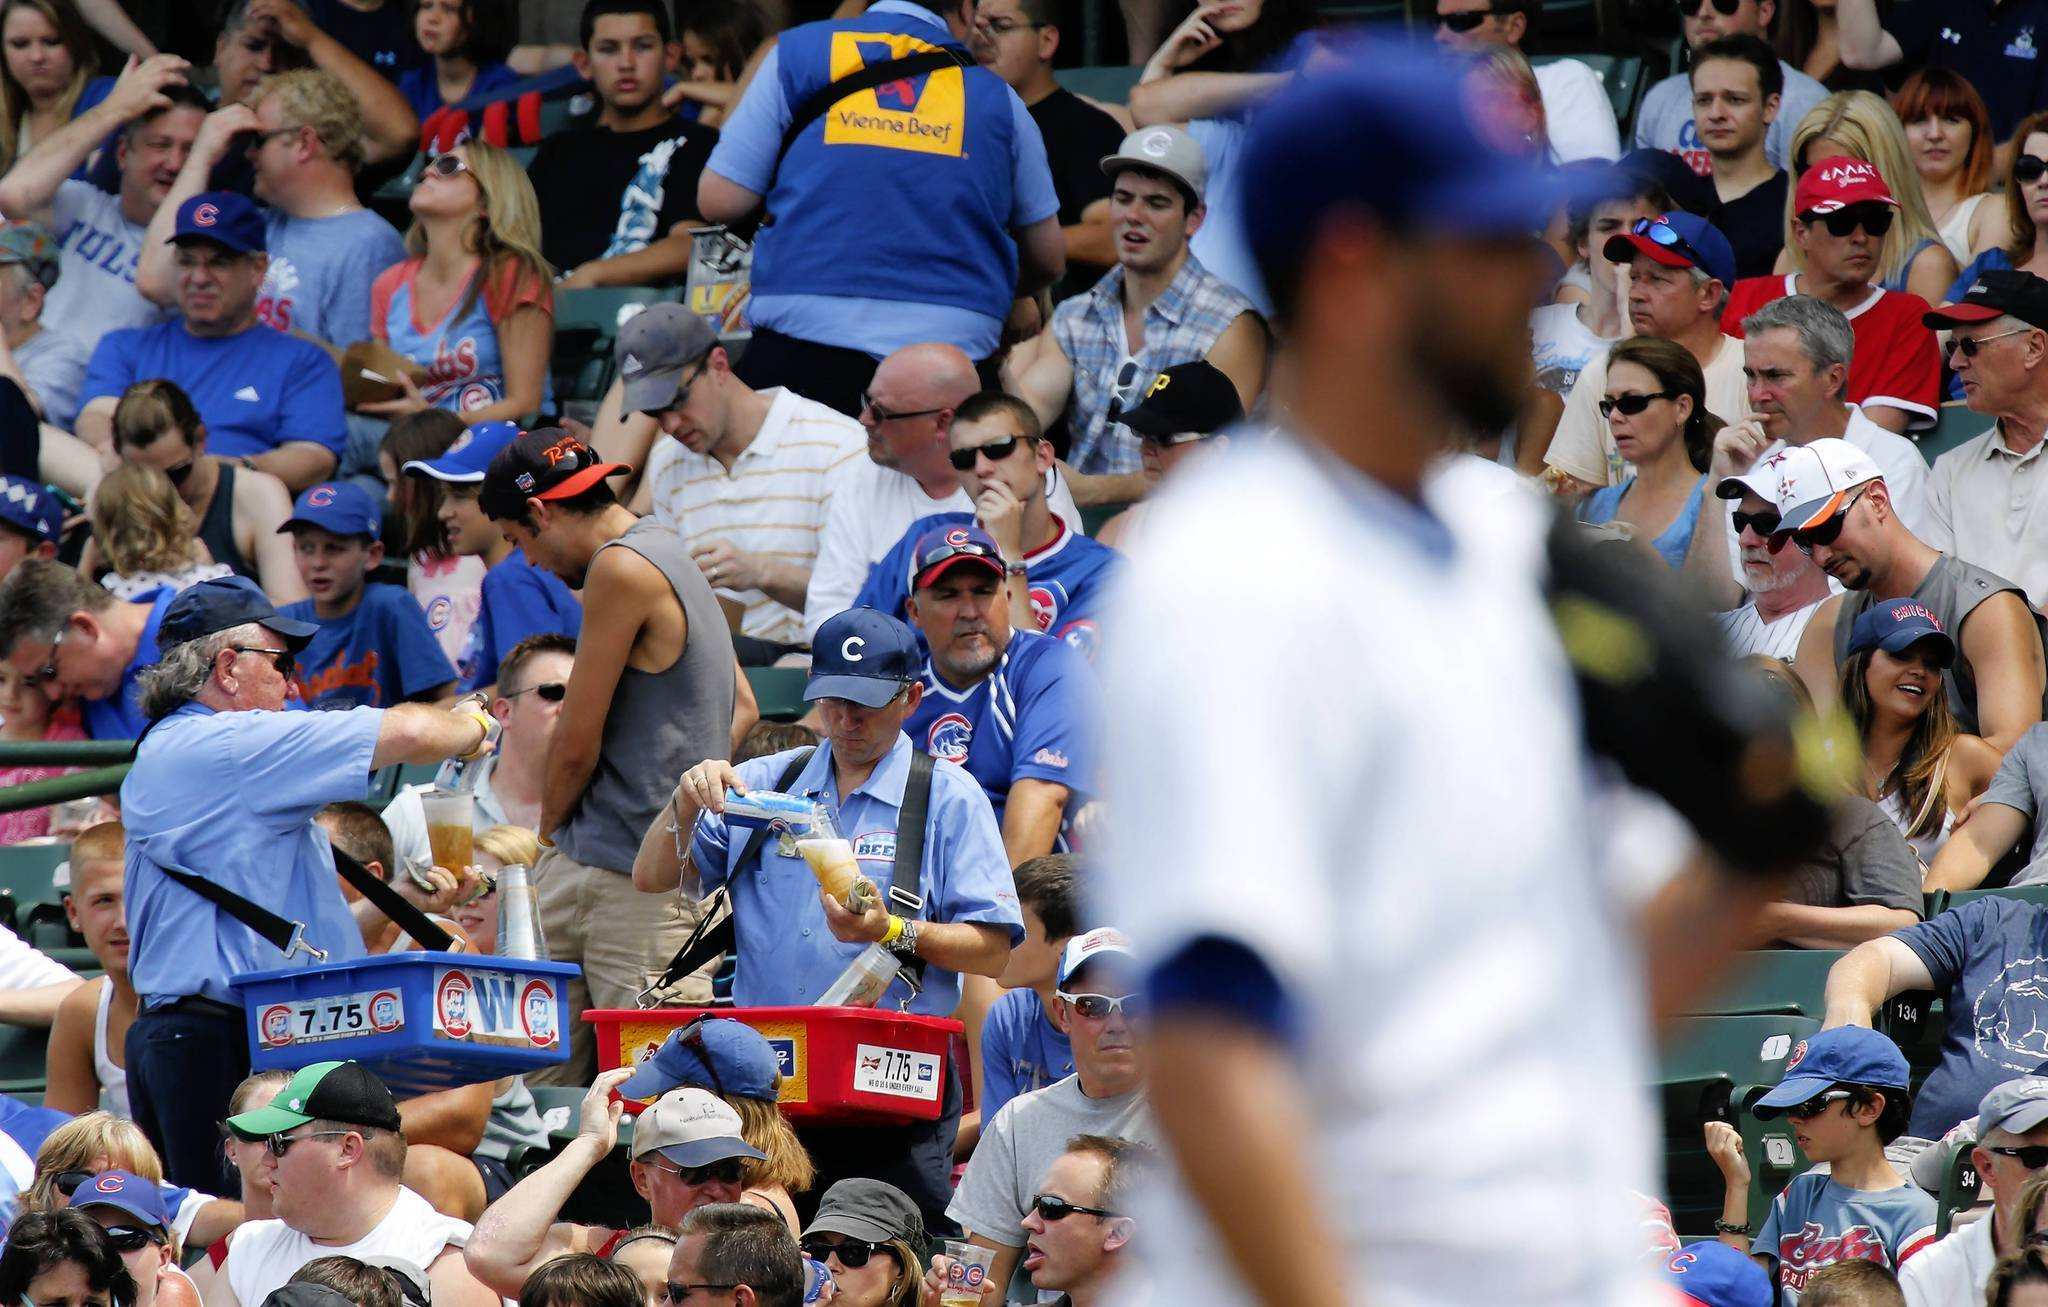 Beer vendors at Wrigley Field will no longer carry Old Style, but will carry offerings from Goose Island, the team said.